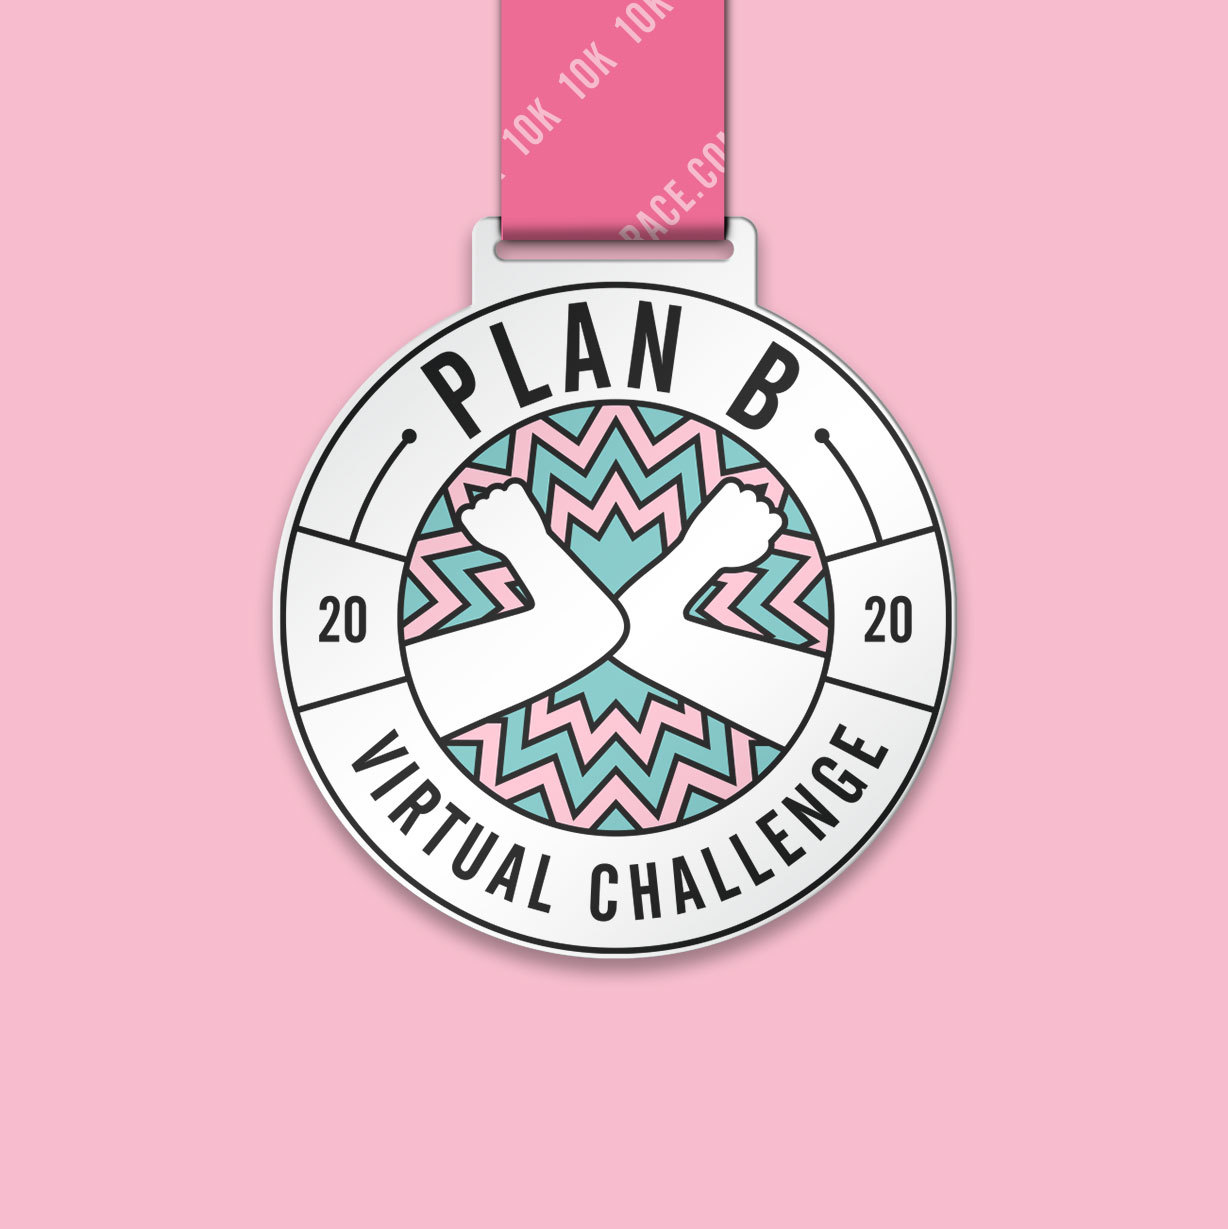 Plan B Medal Mockup Small 2